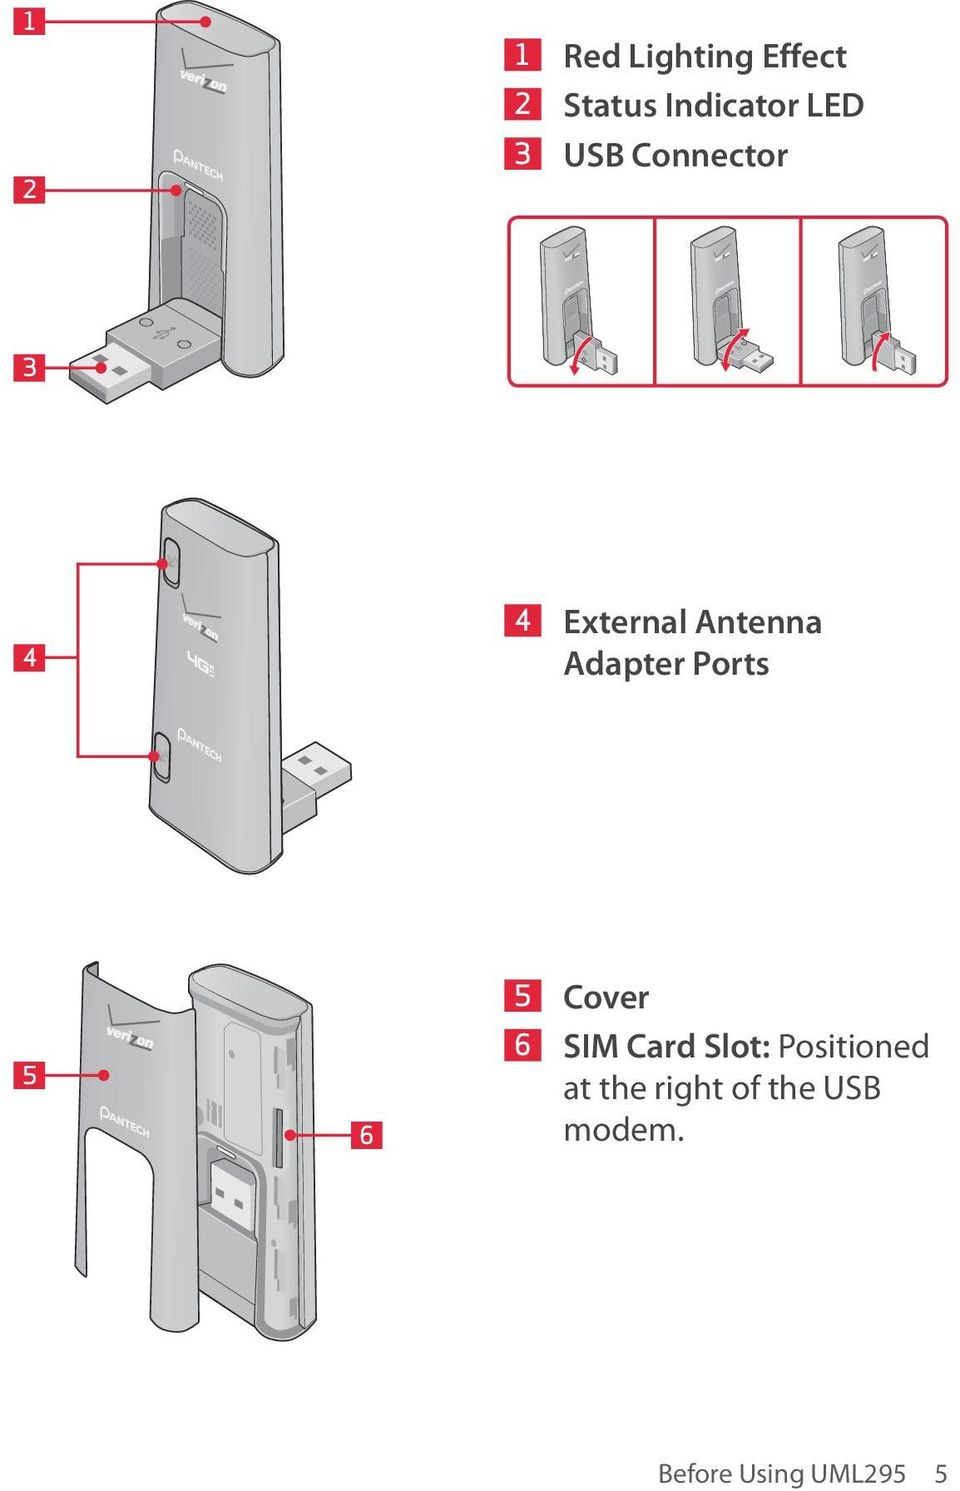 Ports 5 6 5 Cover 6 SIM Card Slot: Positioned at